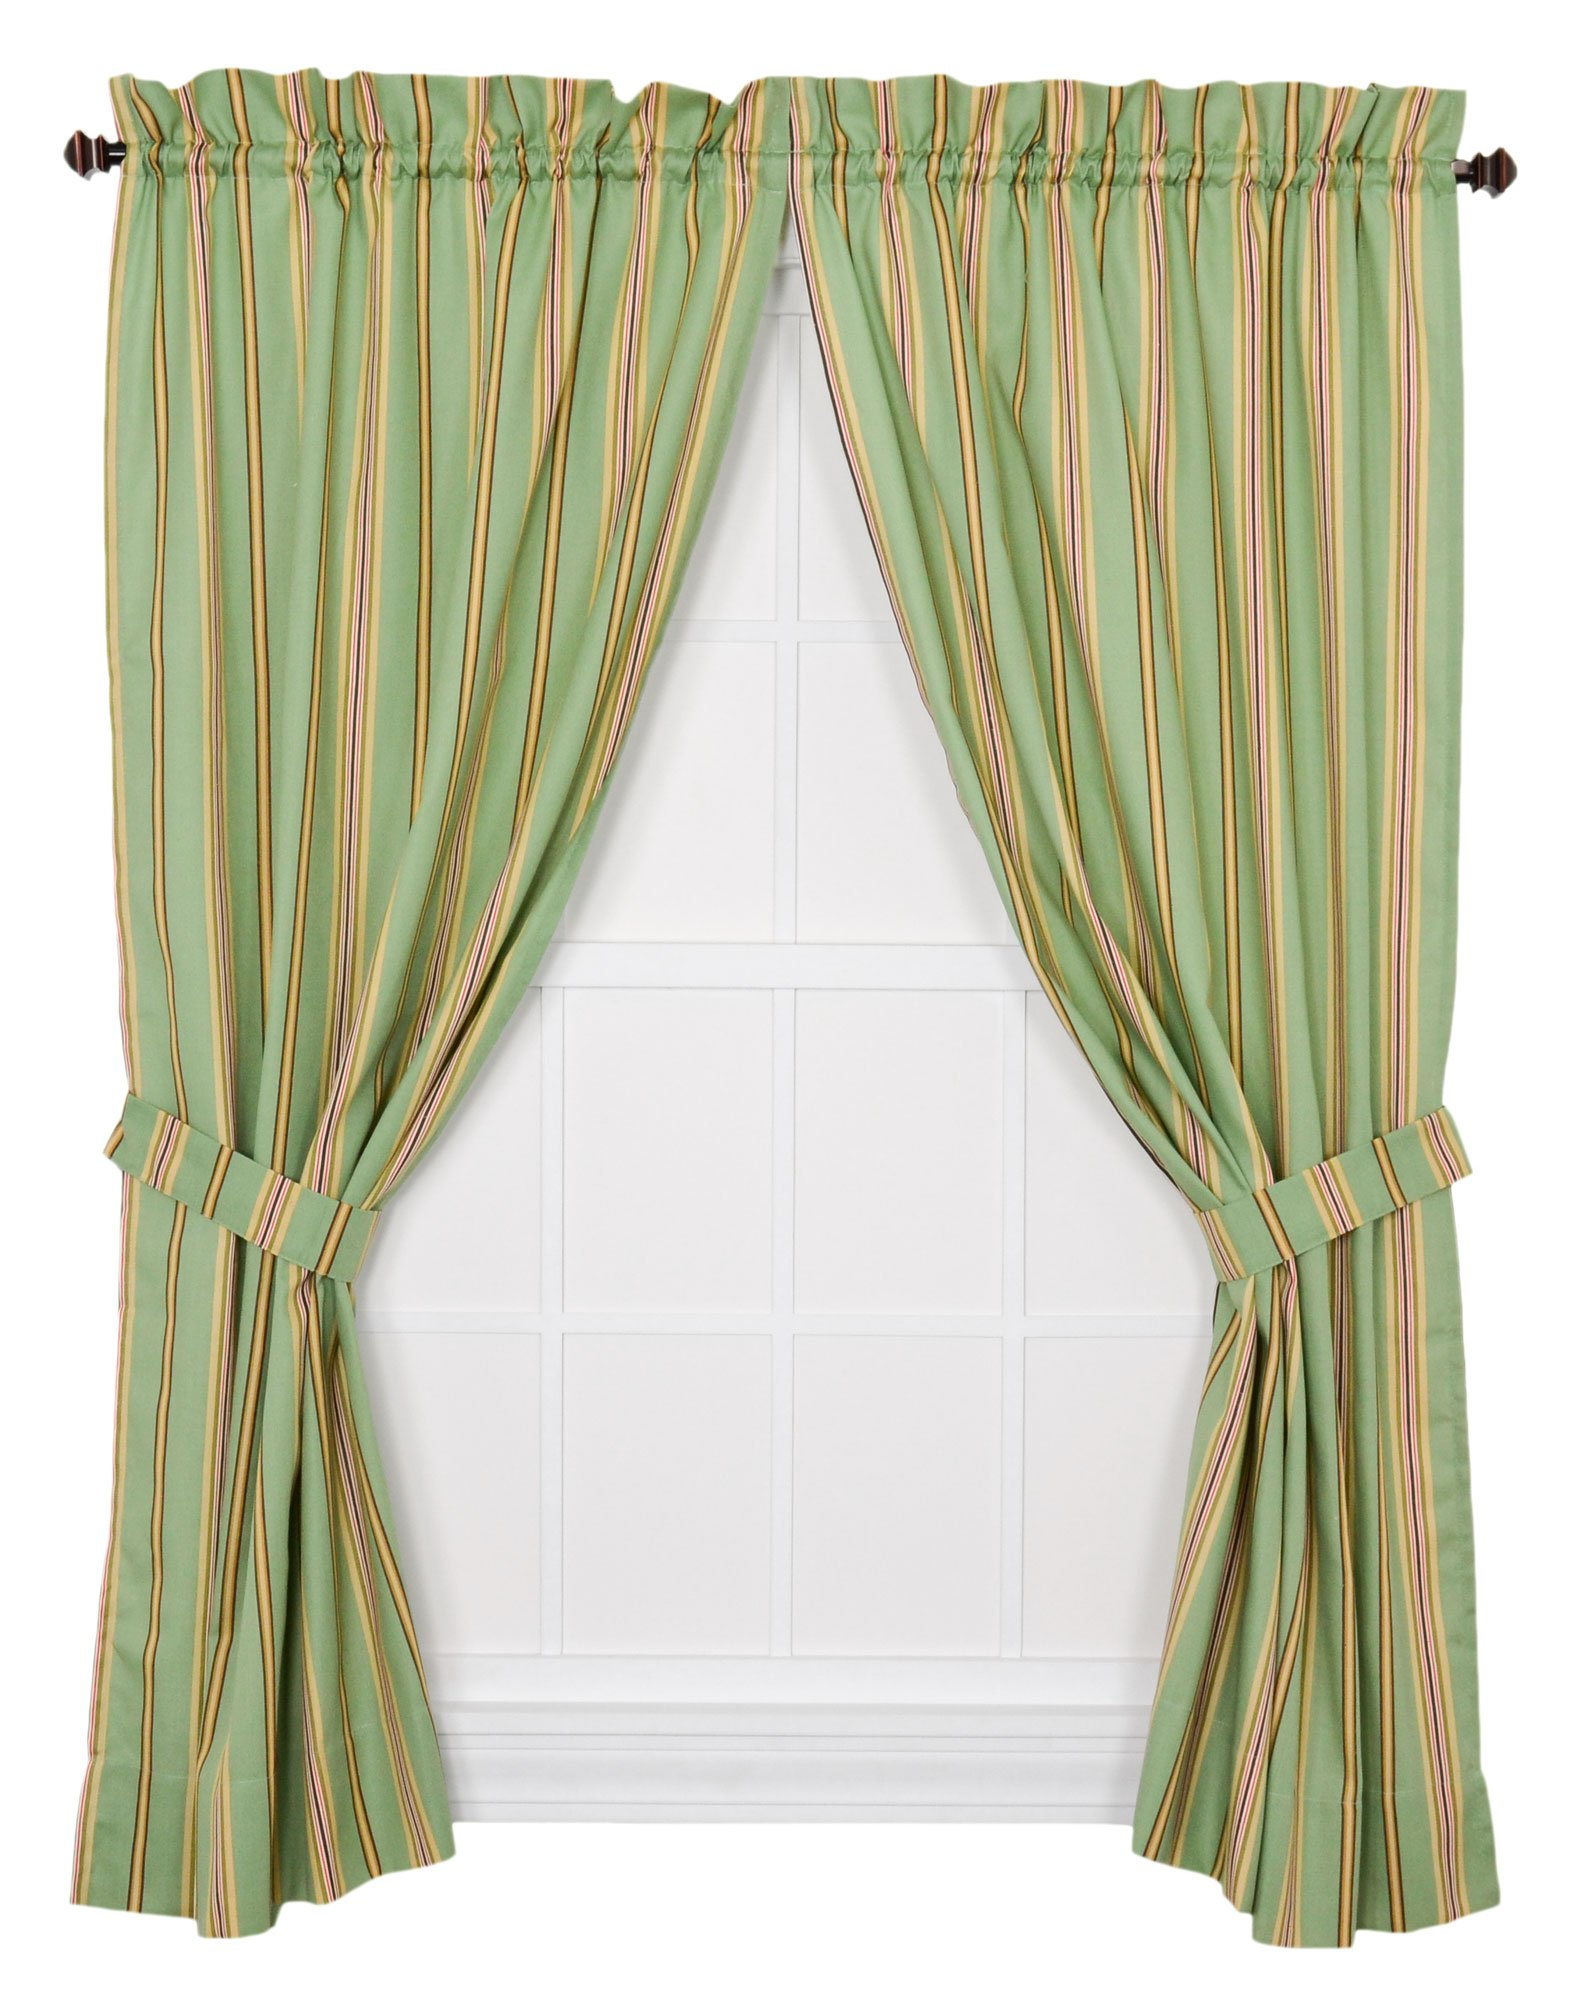 "Ellis Curtain Warwick Medium Scale Stripe 68 by 63-Inch Tailored Panel Pair Curtains with Tiebacks, Green - Multi colored medium scale vertically oriented stripe pattern featuring a range of shades and colors that coordinate easily with a variety of solids, checks, plaids, and florals makes it easy to fit within your home décor Made with 52-percent polyester/48-percent 5-ounce cotton duck fabric creates a smooth draping effect, soft texture and easy maintenance Panel is constructed with a 1.5"" rod pocket, 2.5"" header, and 5"" bottom hem; sold in pairs (2 panels) - living-room-soft-furnishings, living-room, draperies-curtains-shades - 81pY9oLJnuL -"